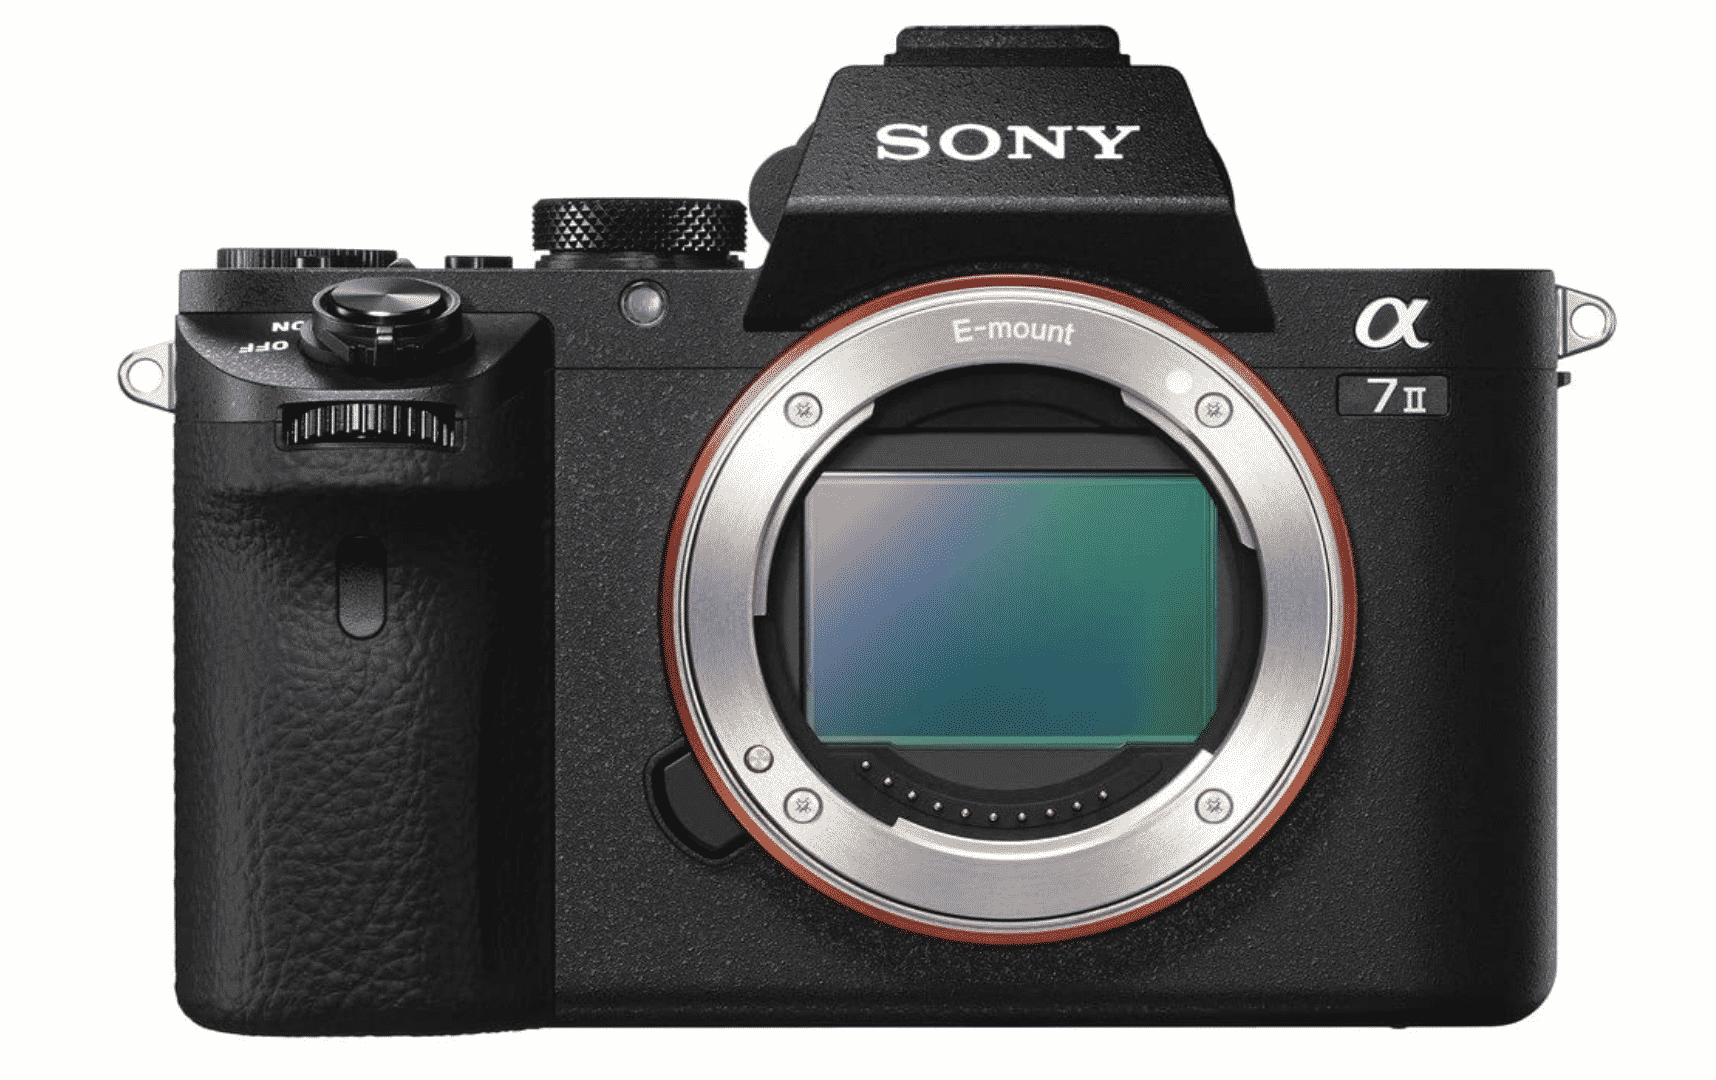 Sony camera Black Friday deals